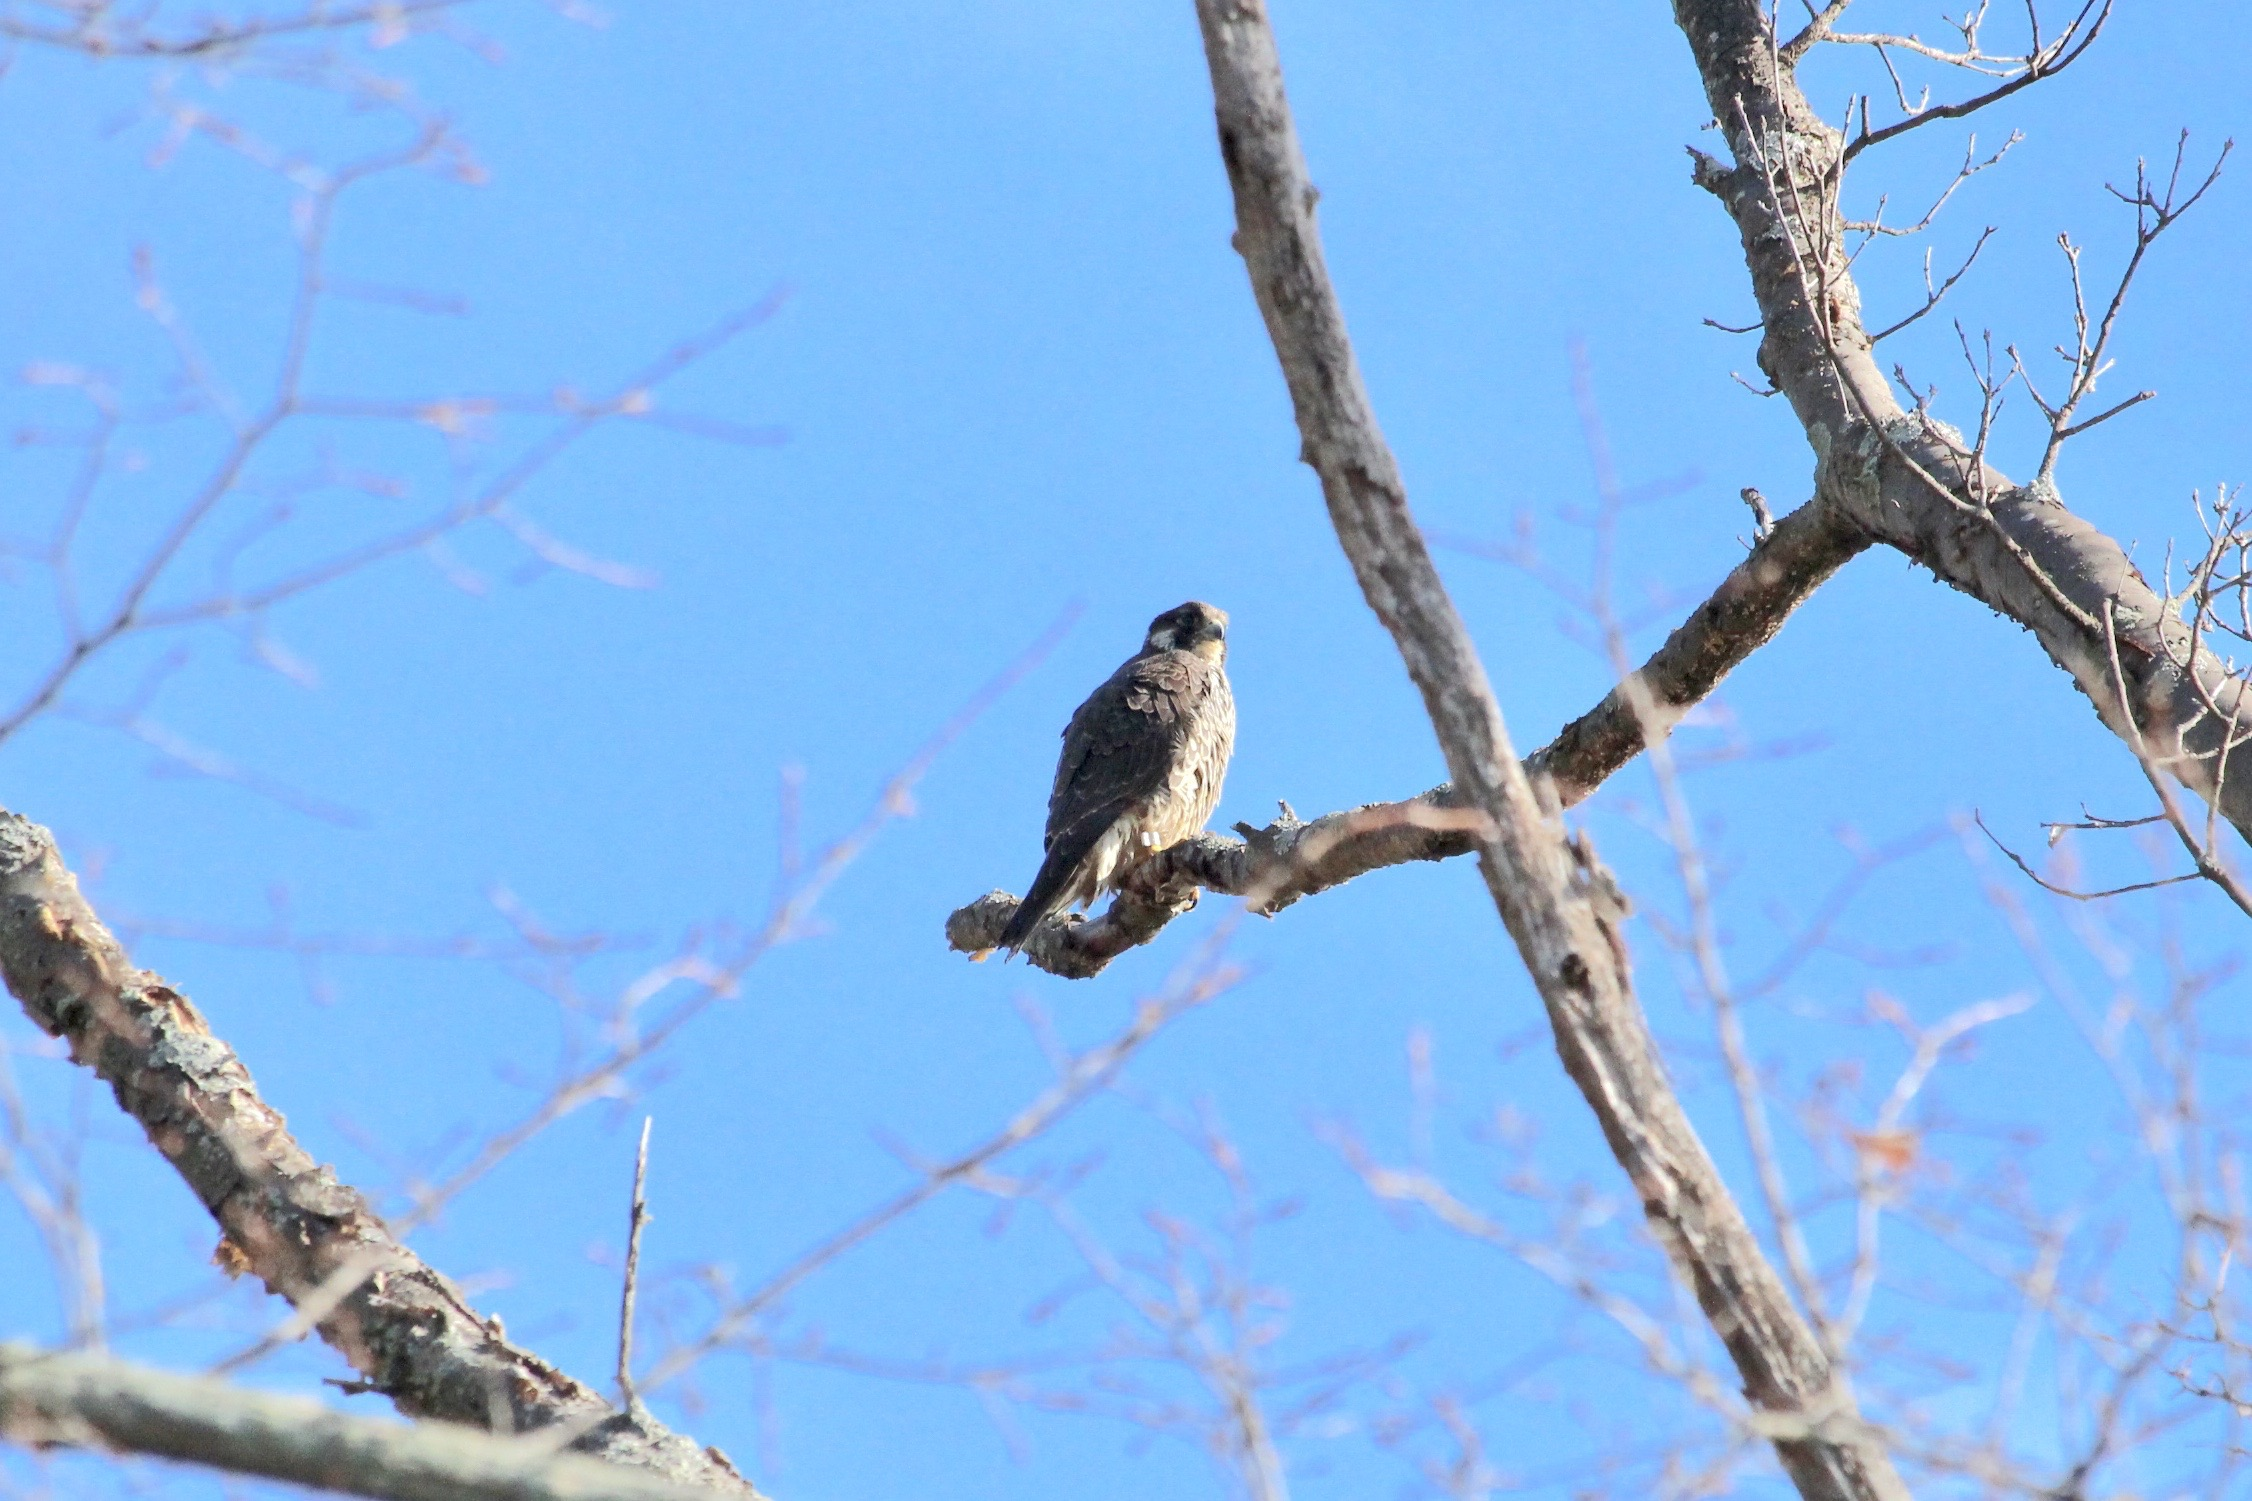 A juvenile peregrine falcon in Massachusetts. Photo by Dyana, Flickr, Creative Commons